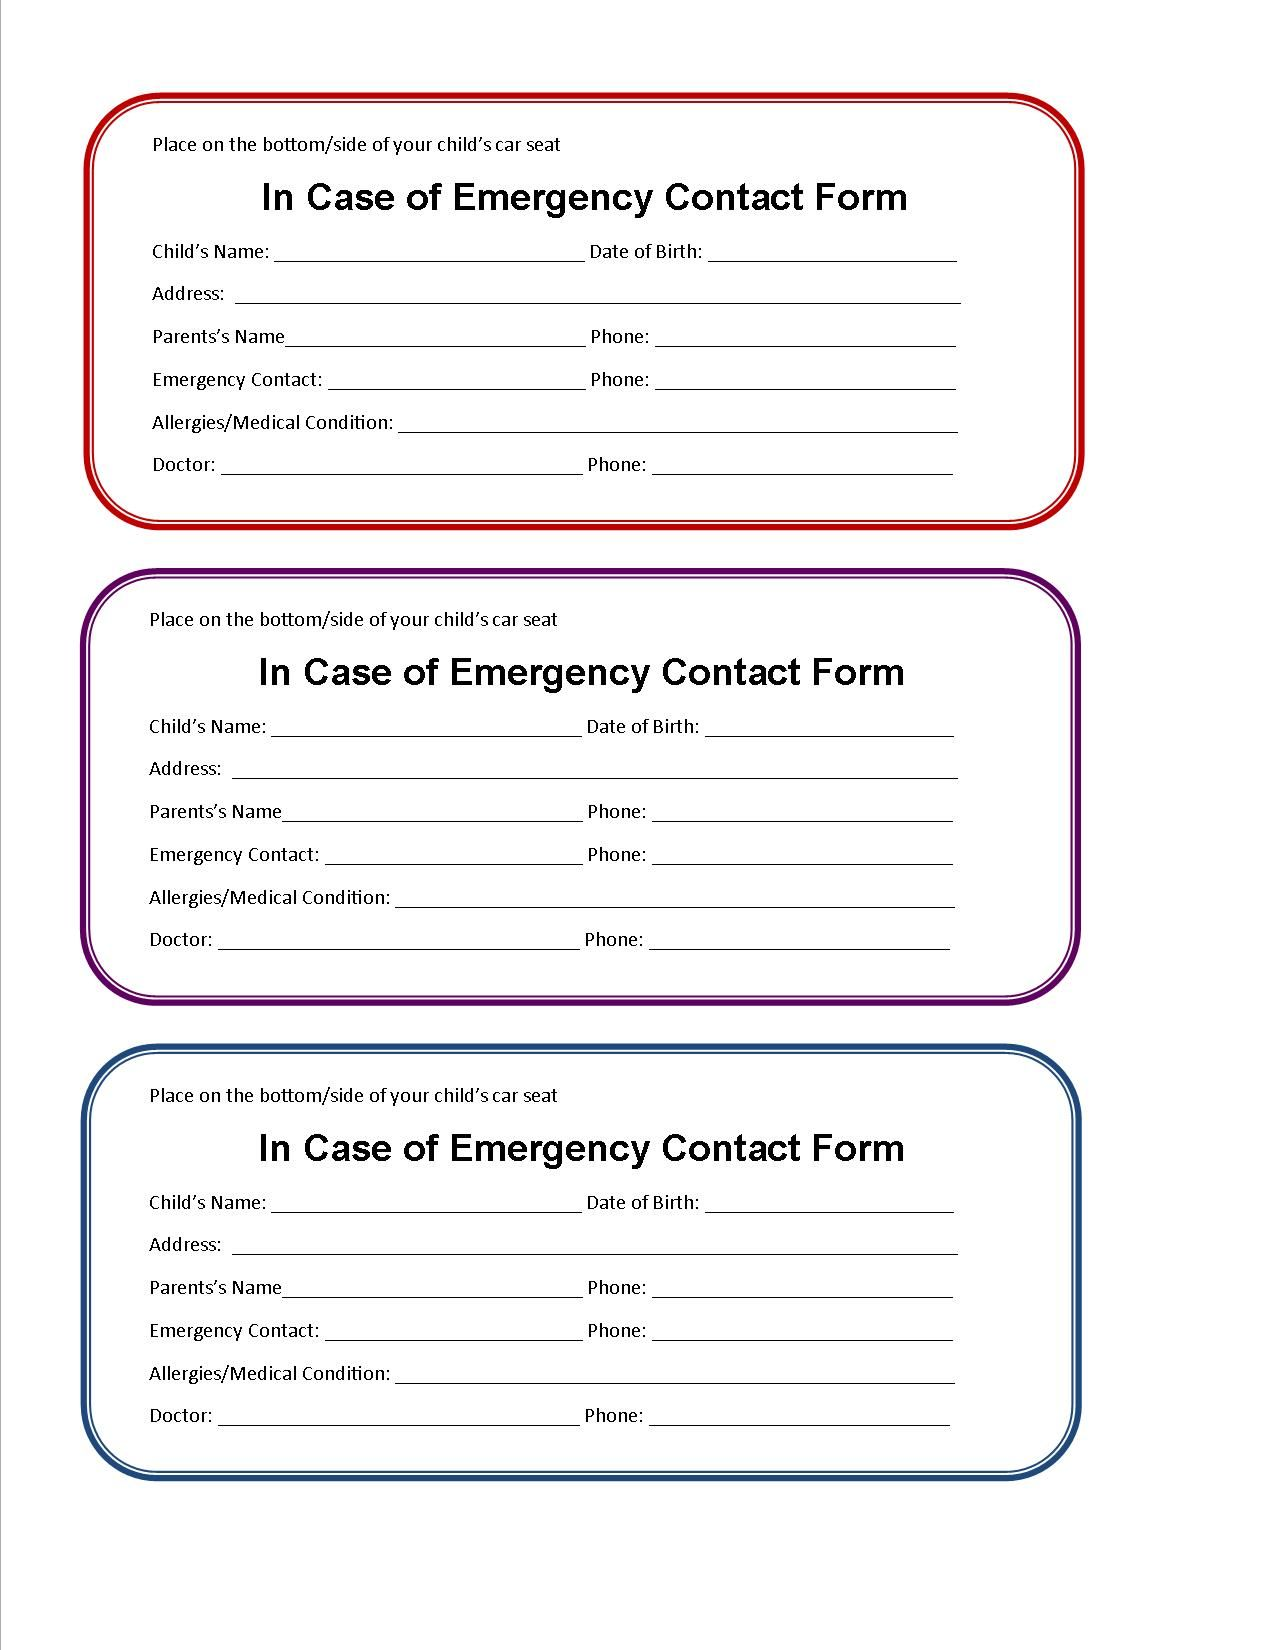 printable emergency contact form for car seat parenting kids